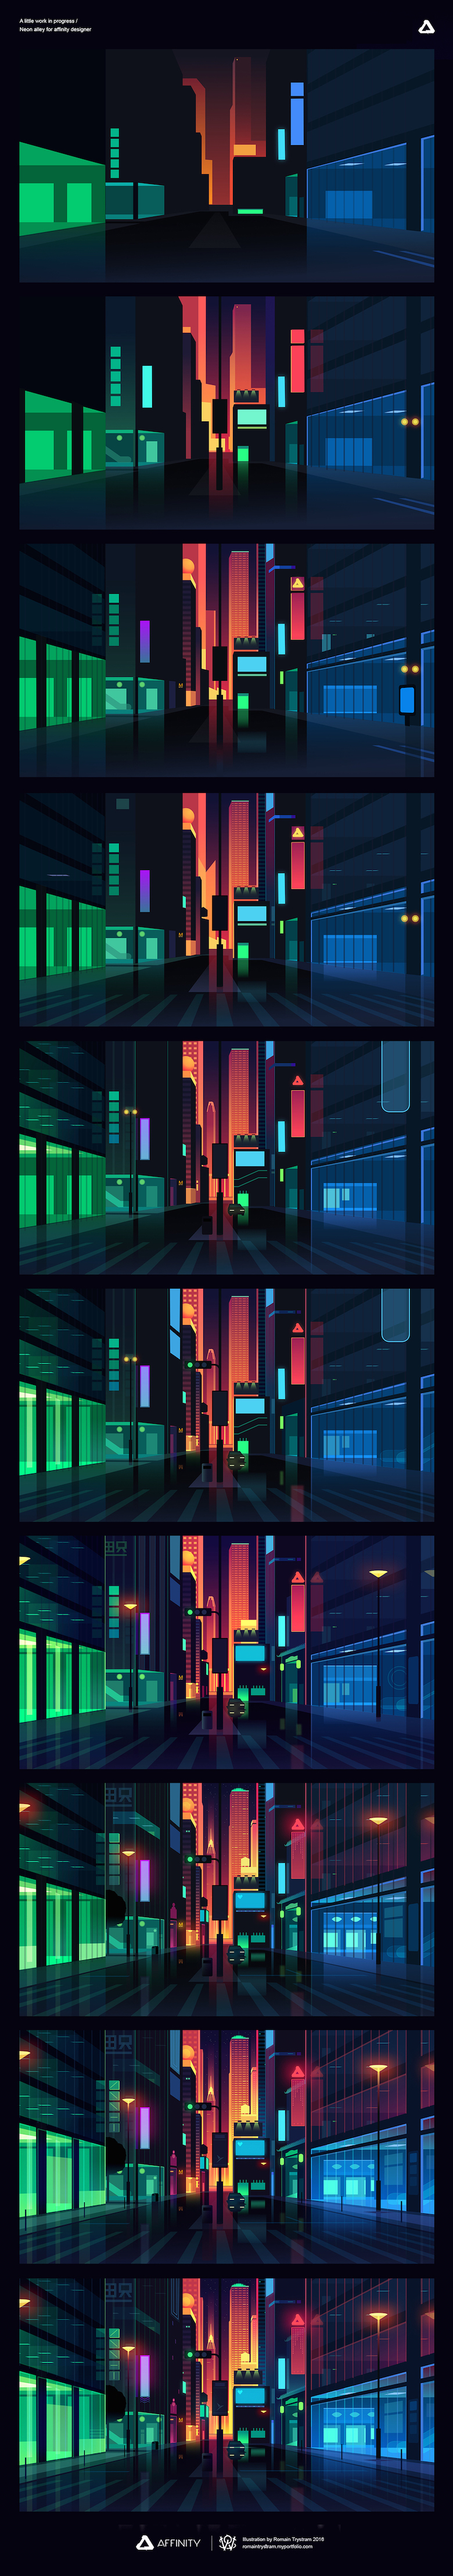 Colorful architecture skyline and cityscape illustrations - Affinity Designer 1 (3)